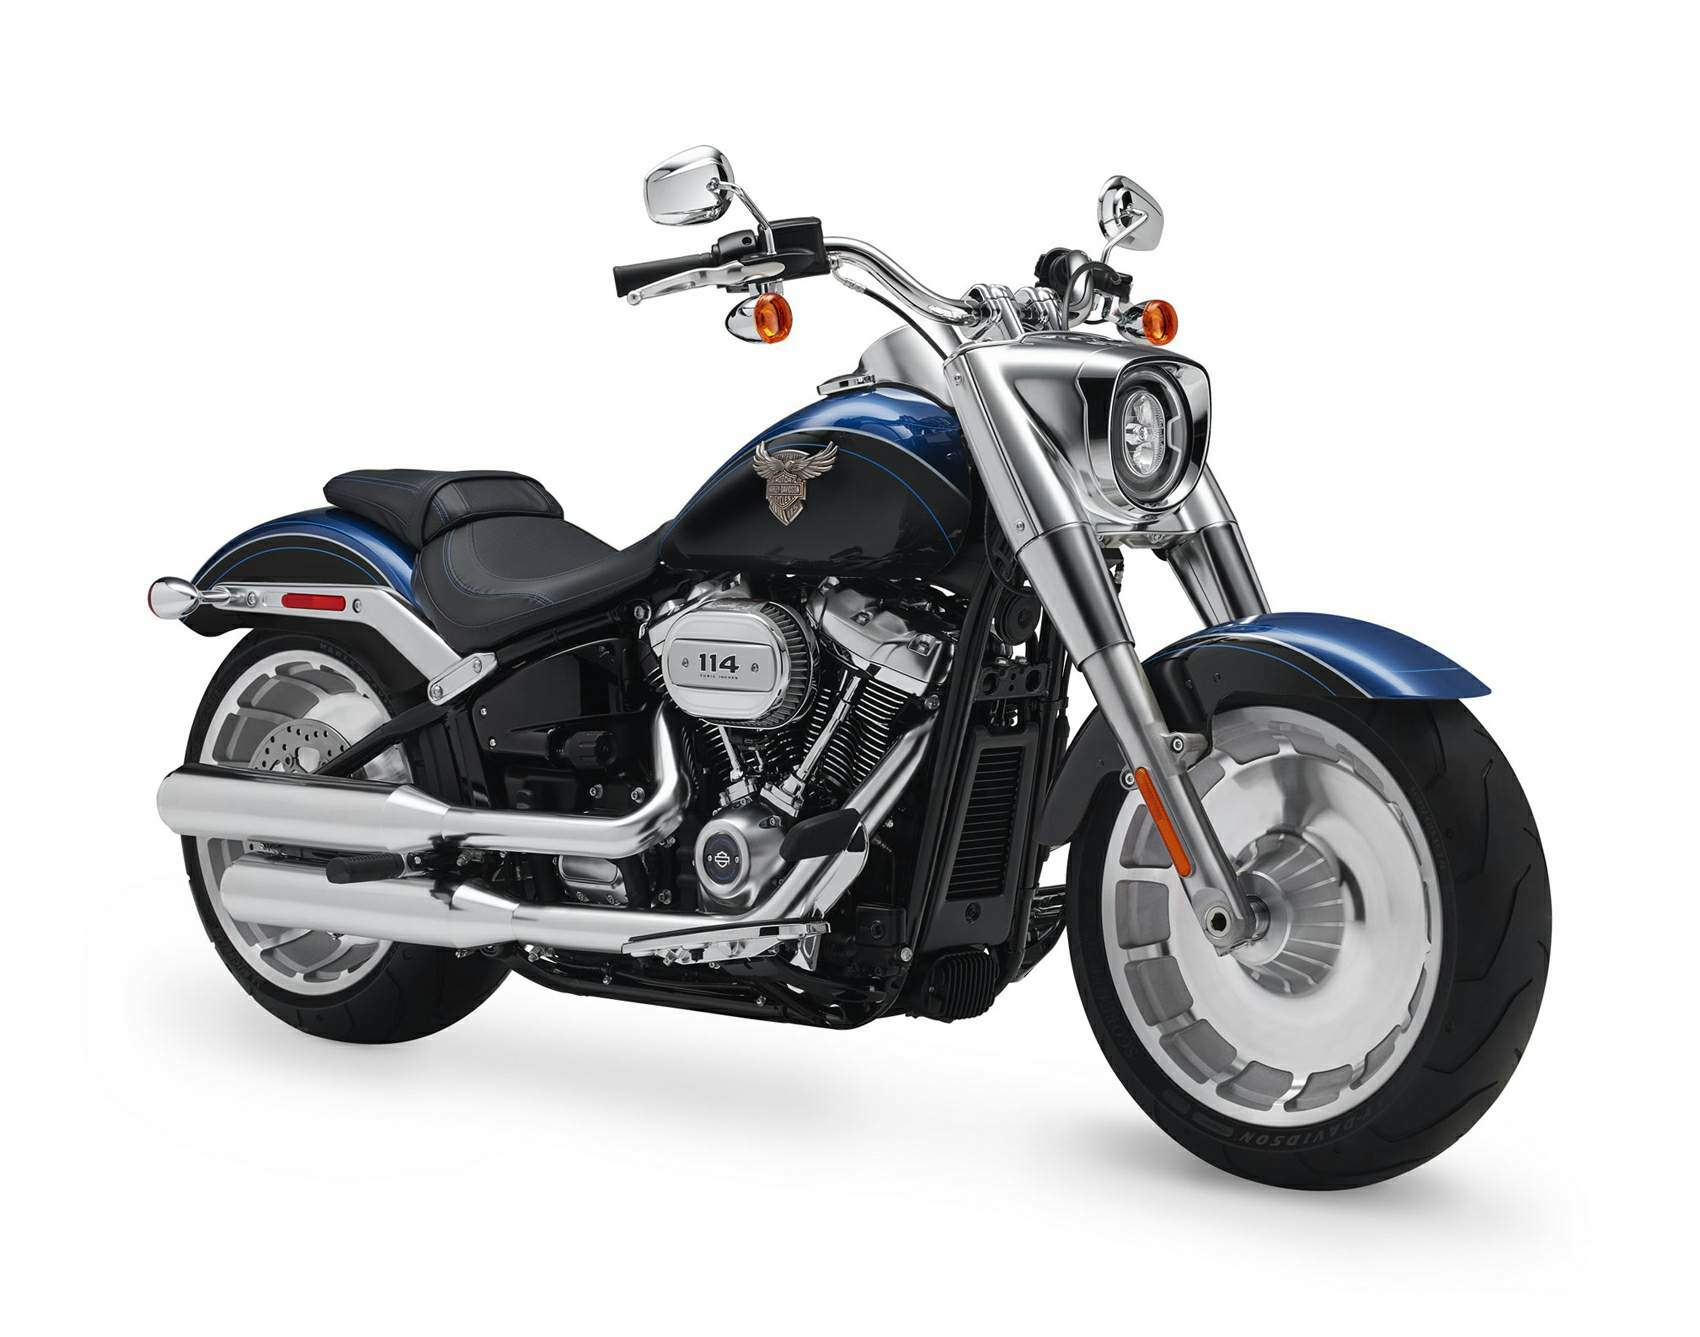 Мотоцикл Harley Davidson Softail Fat Boy -114 - 115th Anniversary 2018